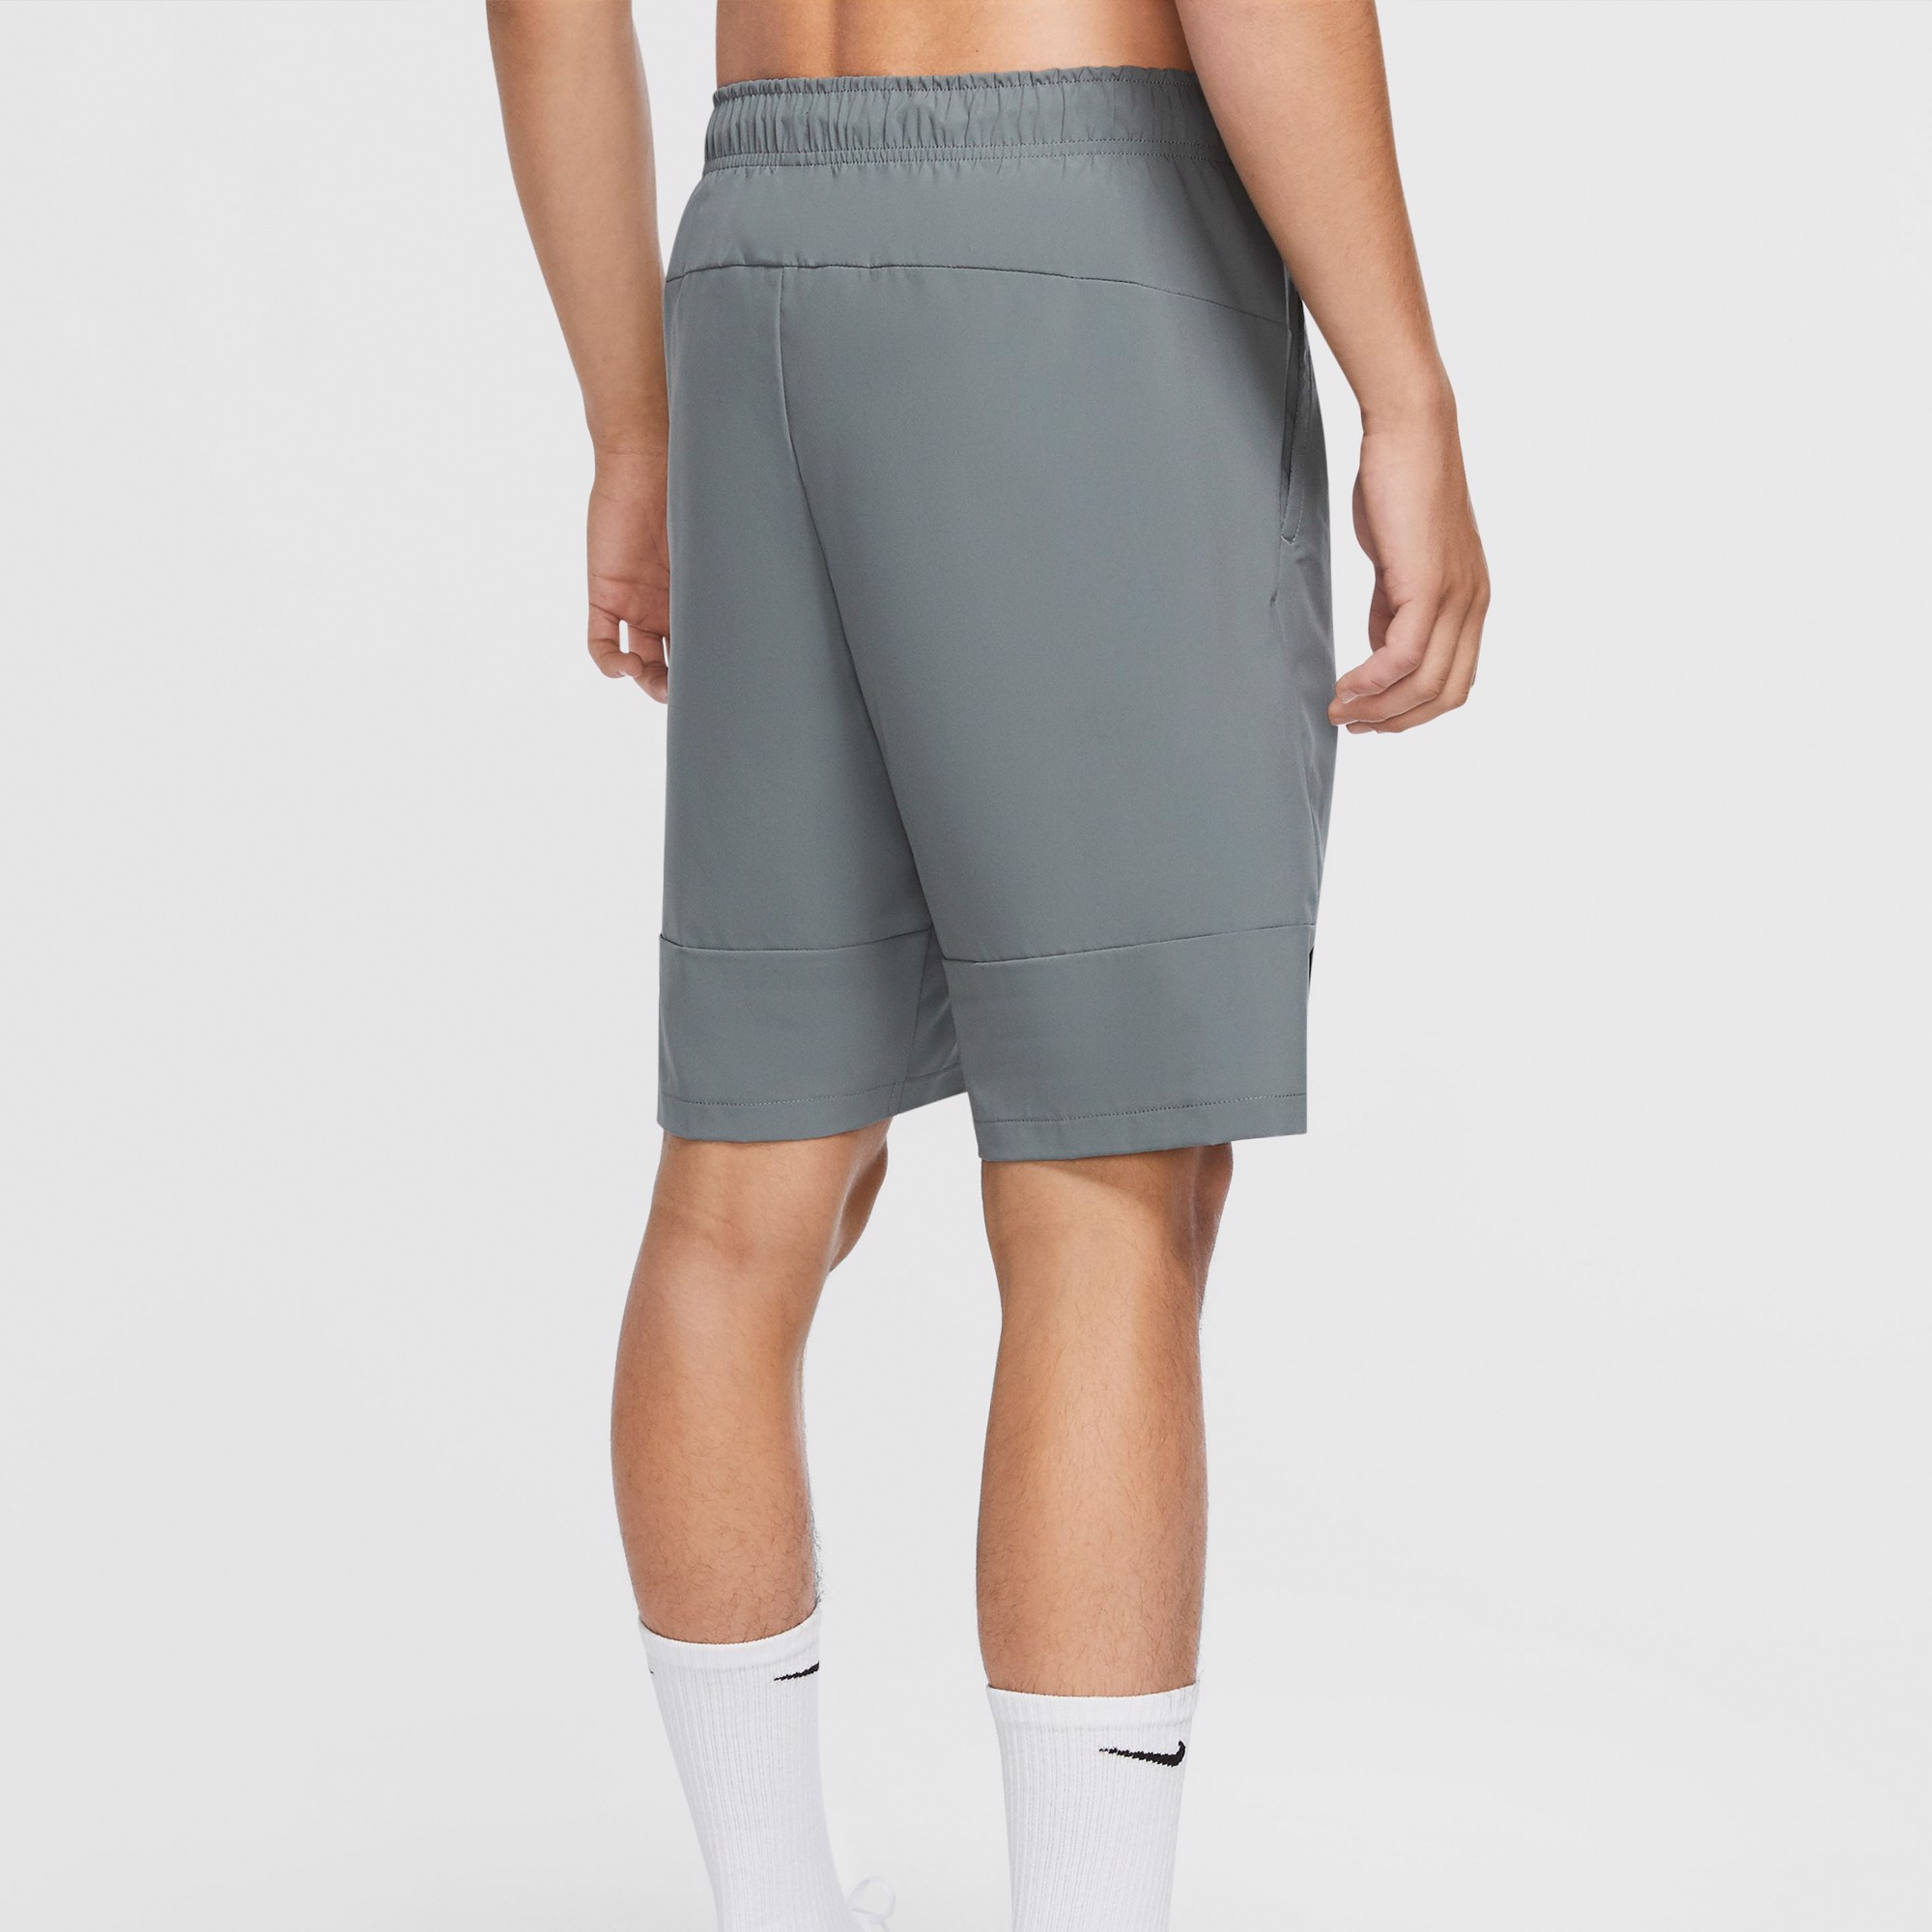 Nike Flex Woven Training Shorts - Smoke Grey